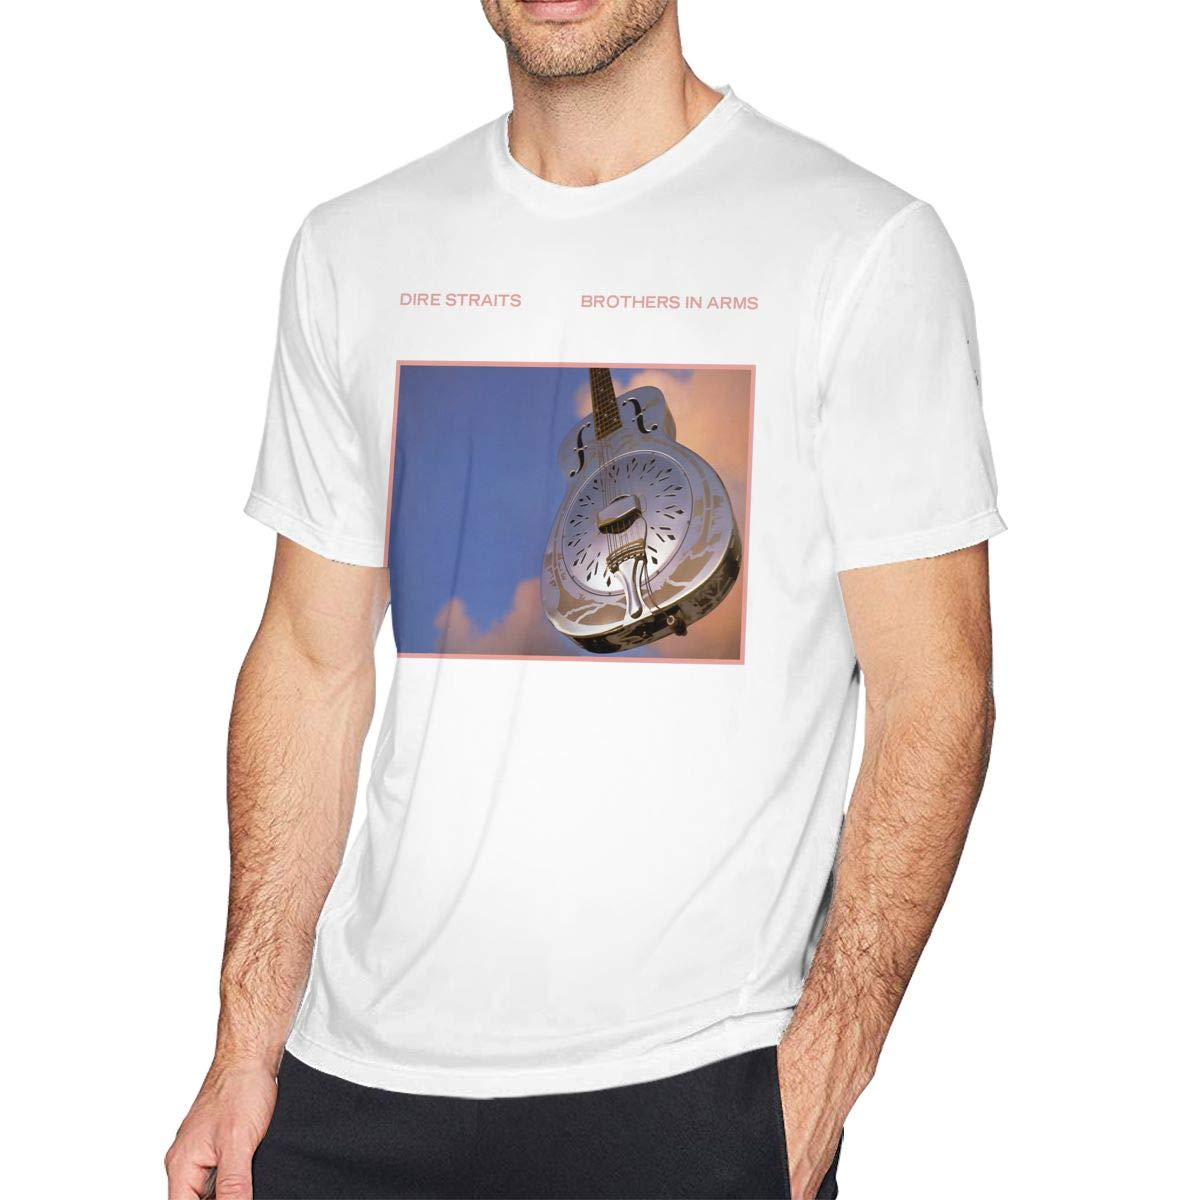 Wwdcd Dire Straits Brothers In Arms Short Sleeve T Shirt 5282